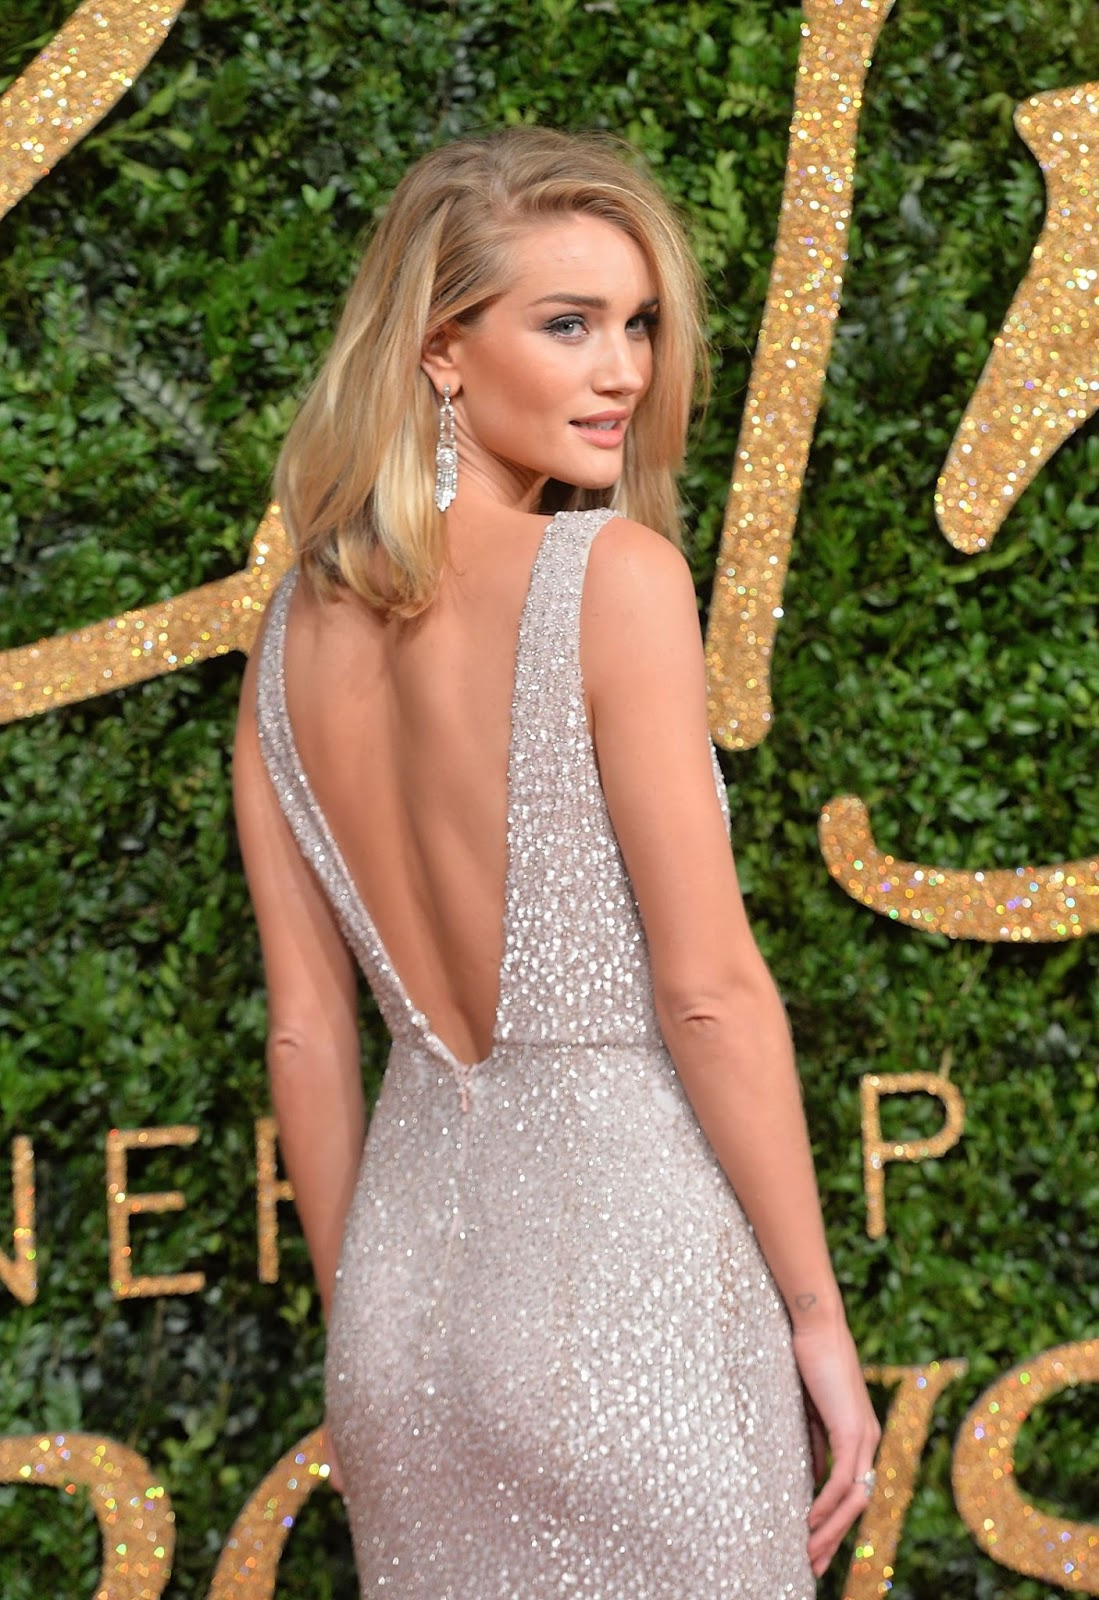 Rosie Huntington-Whiteley 2015 , Rosie Huntington-Whiteley in London